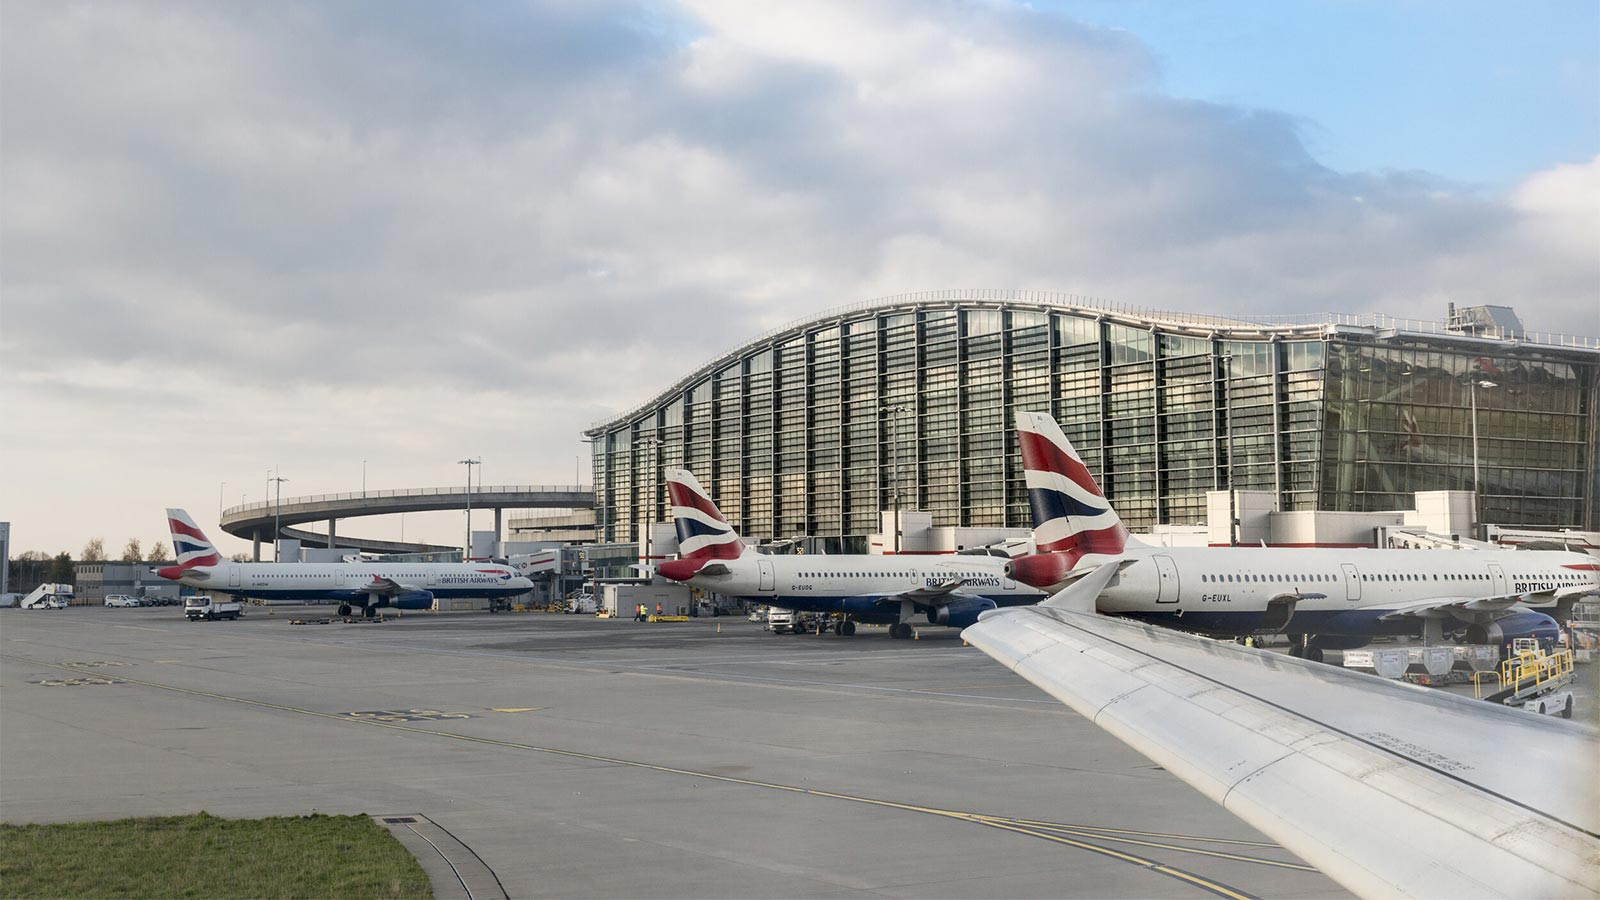 Rapid COVID-19 tests begin at Heathrow airport